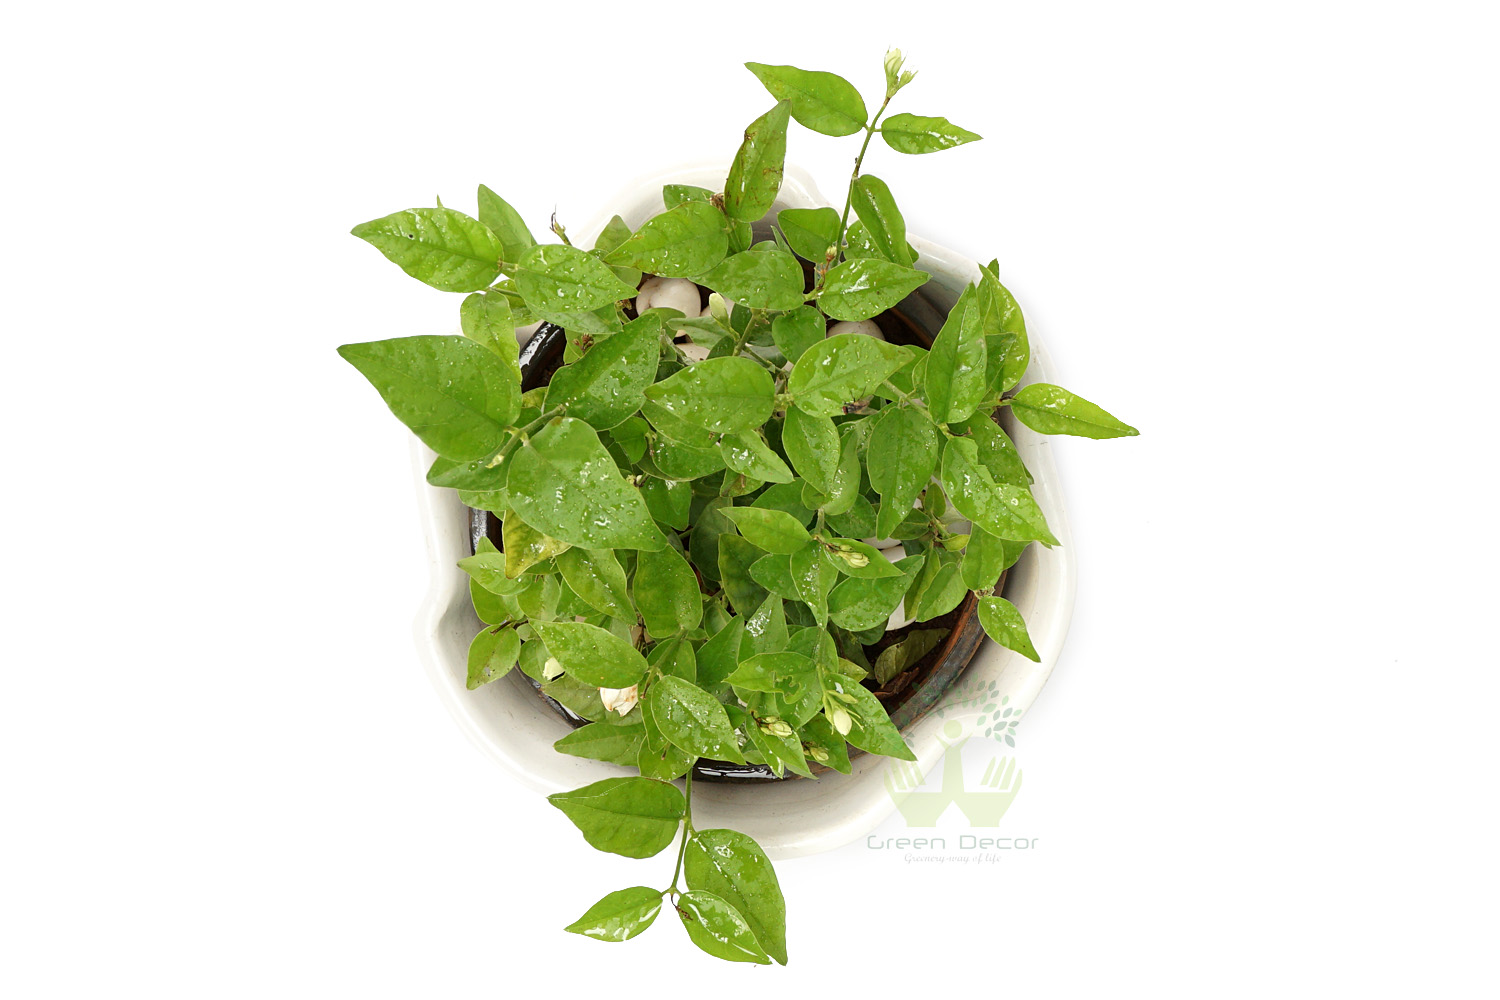 Buy Mogra Plants Top View , White Pots and seeds in Delhi NCR by the best online nursery shop Greendecor.